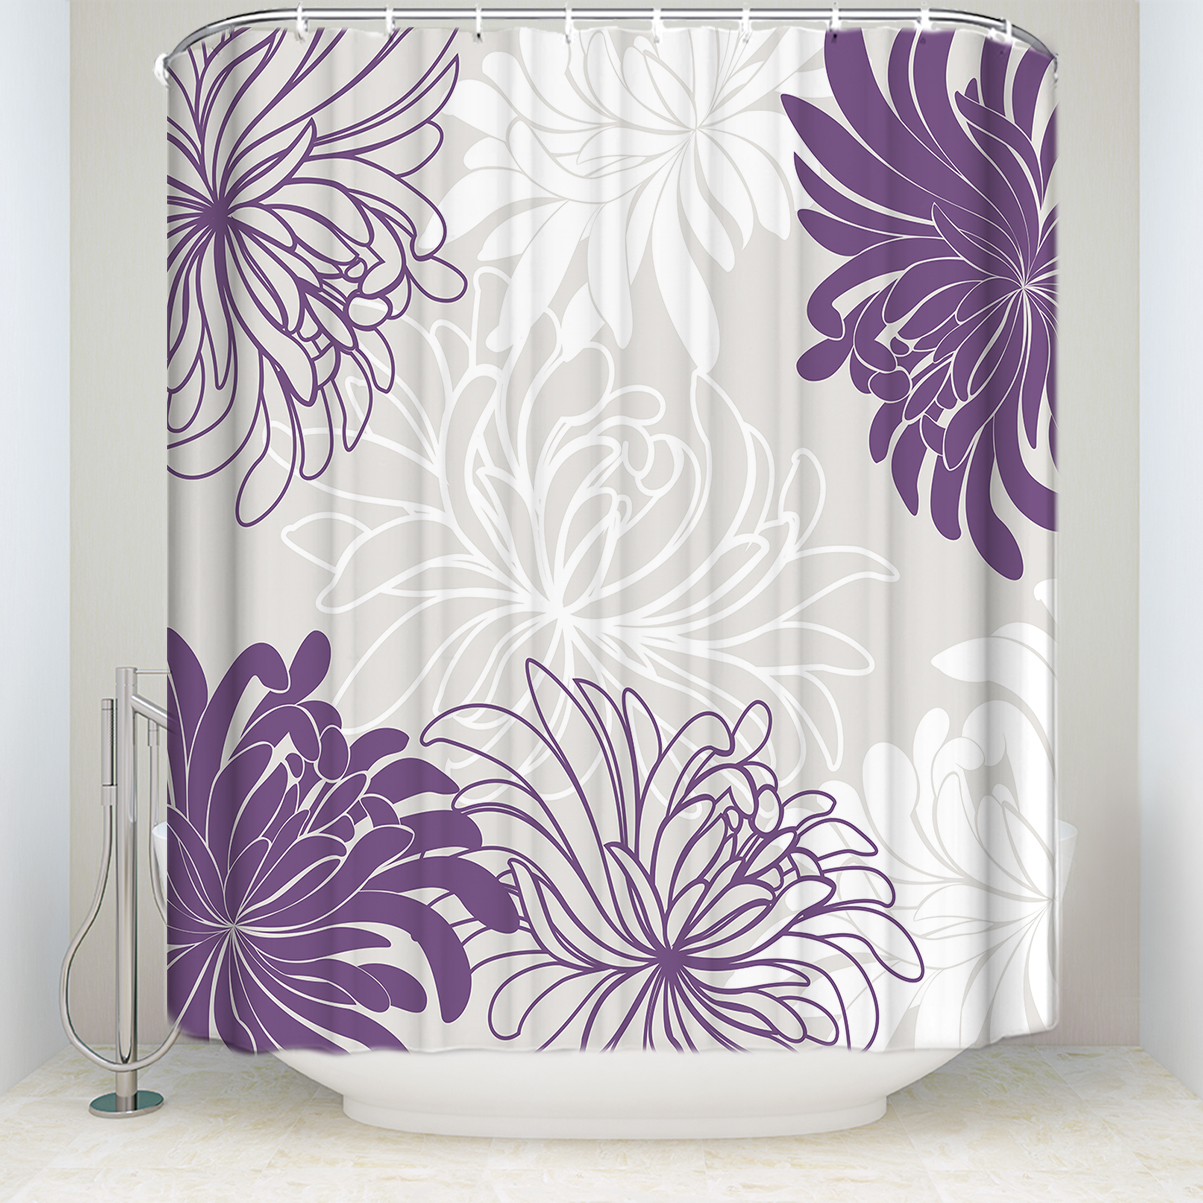 Lavender High Heel Necklace Waterproof Fabric Shower Curtain Bath Accessory Sets